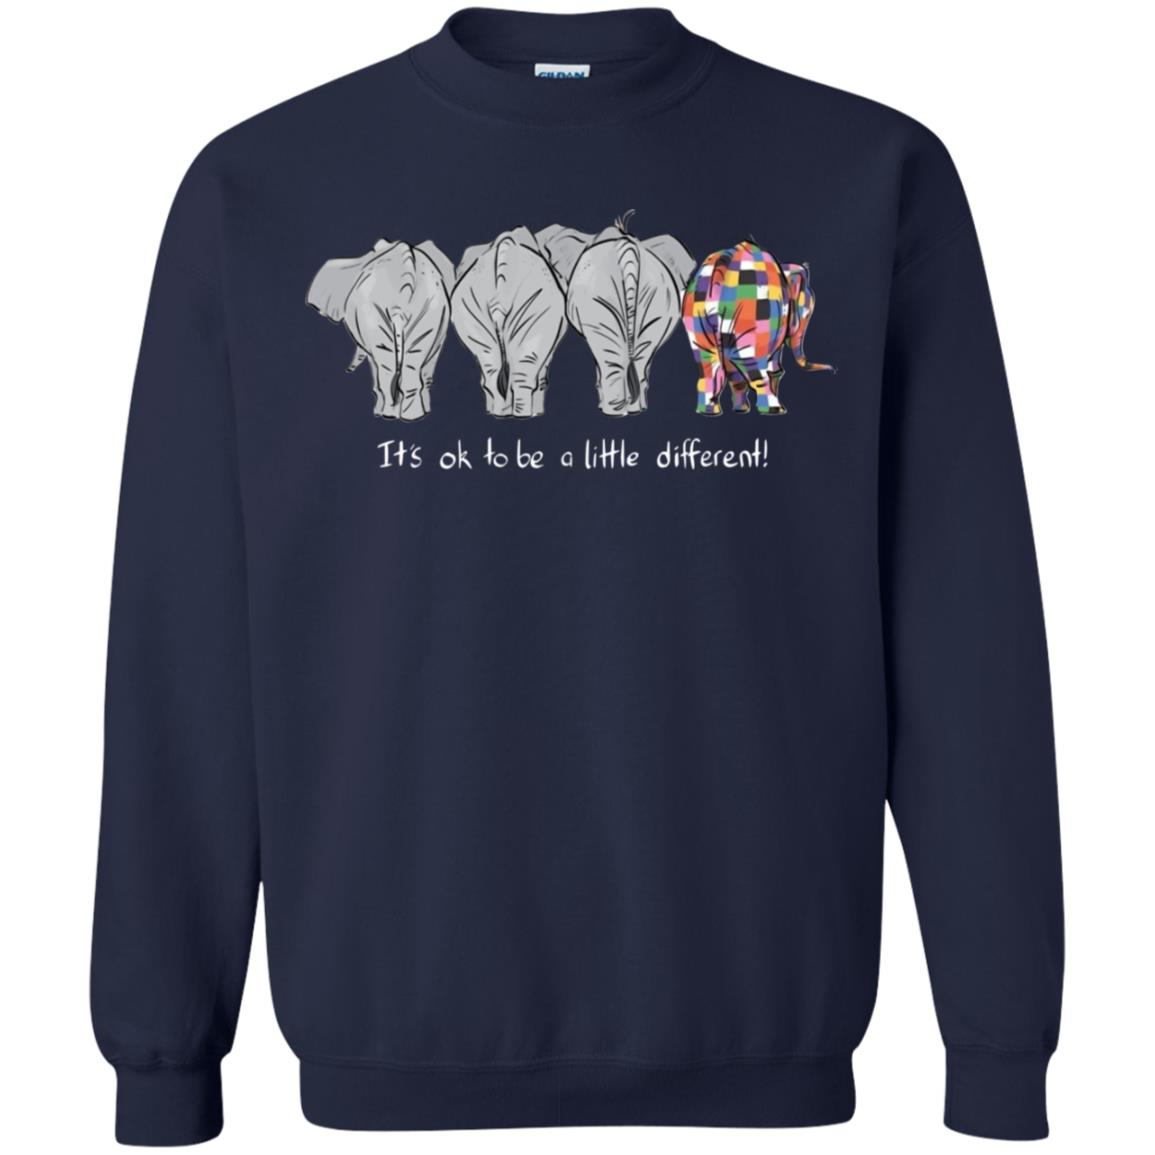 b4ee758f6 Elephant it s ok to be a little different shirt - RobinPlaceFabrics